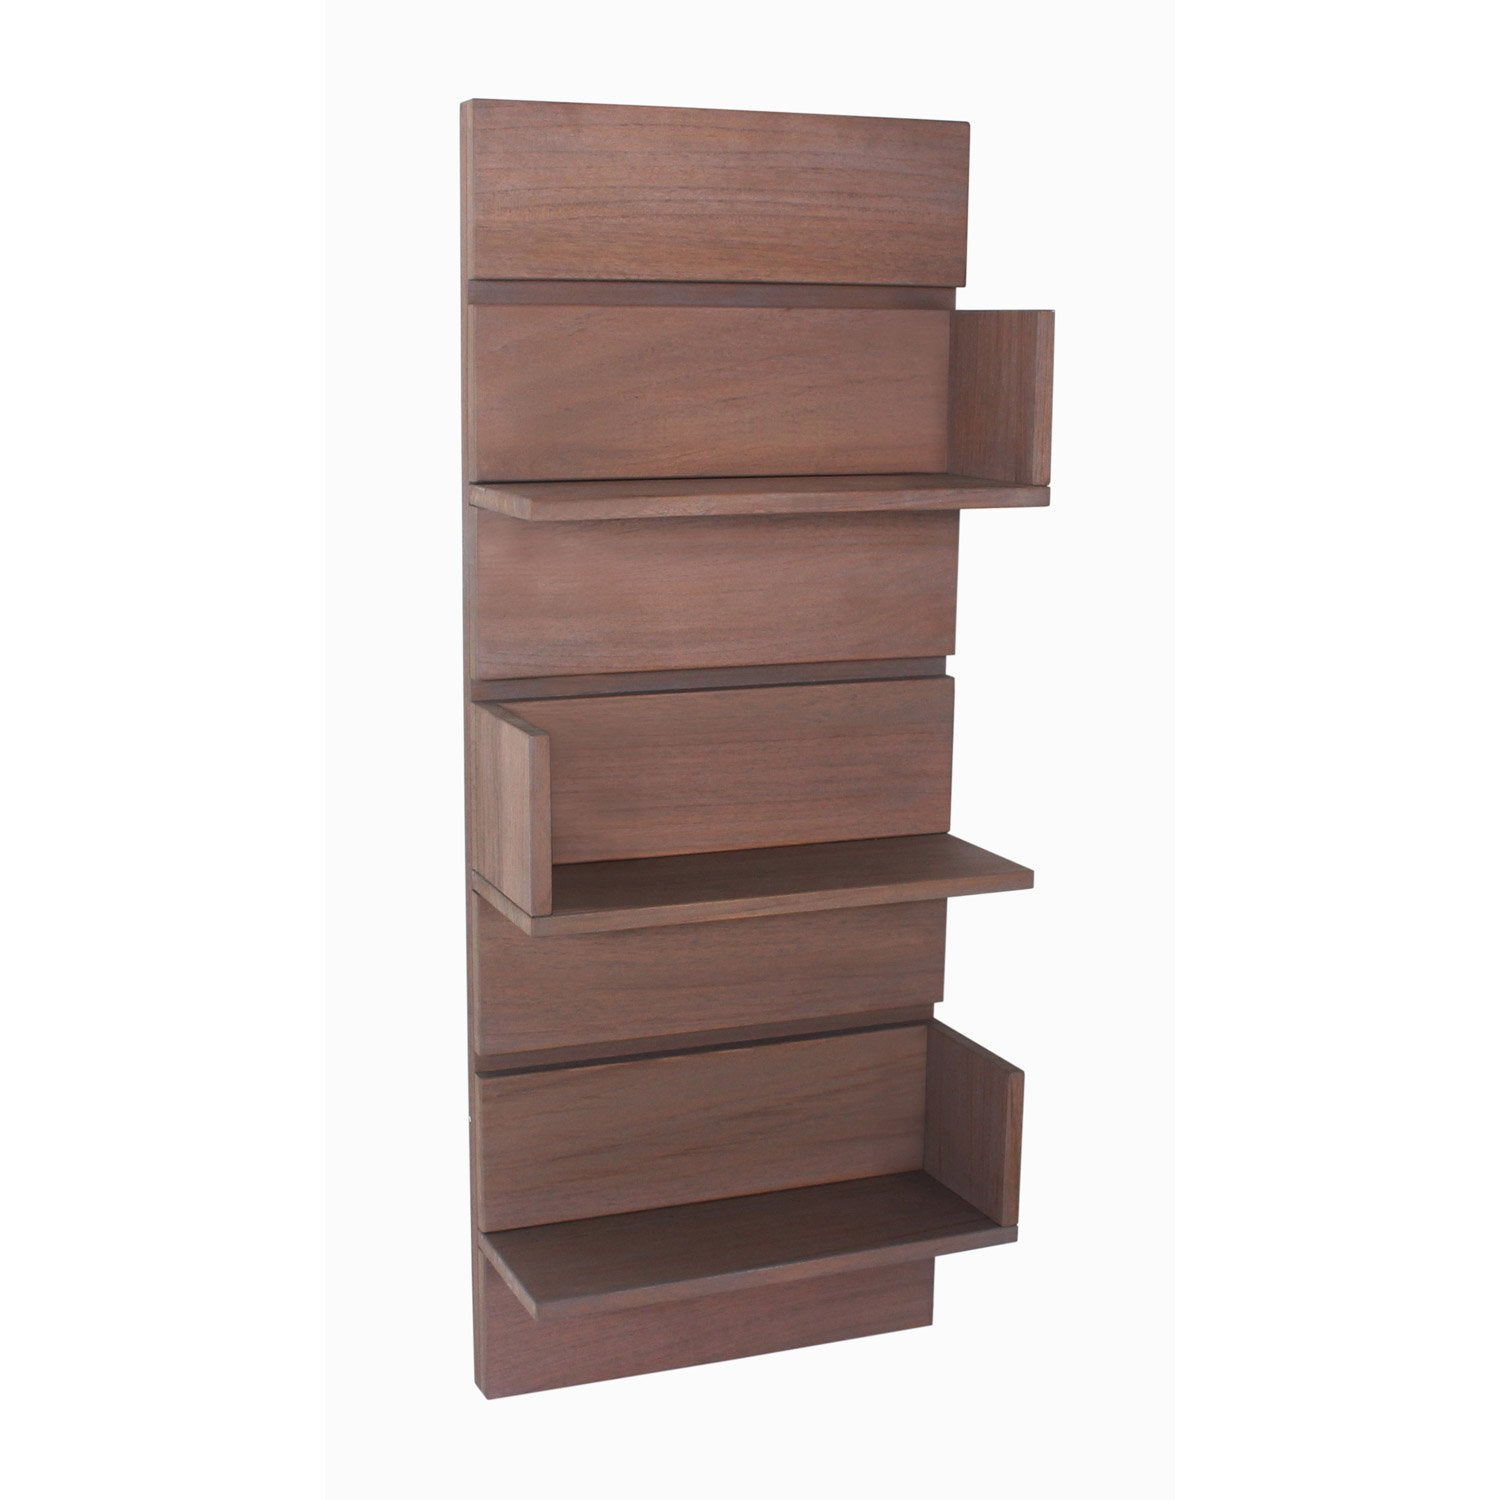 etagere 40 cm largeur avec leroy merlin brico depot. Black Bedroom Furniture Sets. Home Design Ideas